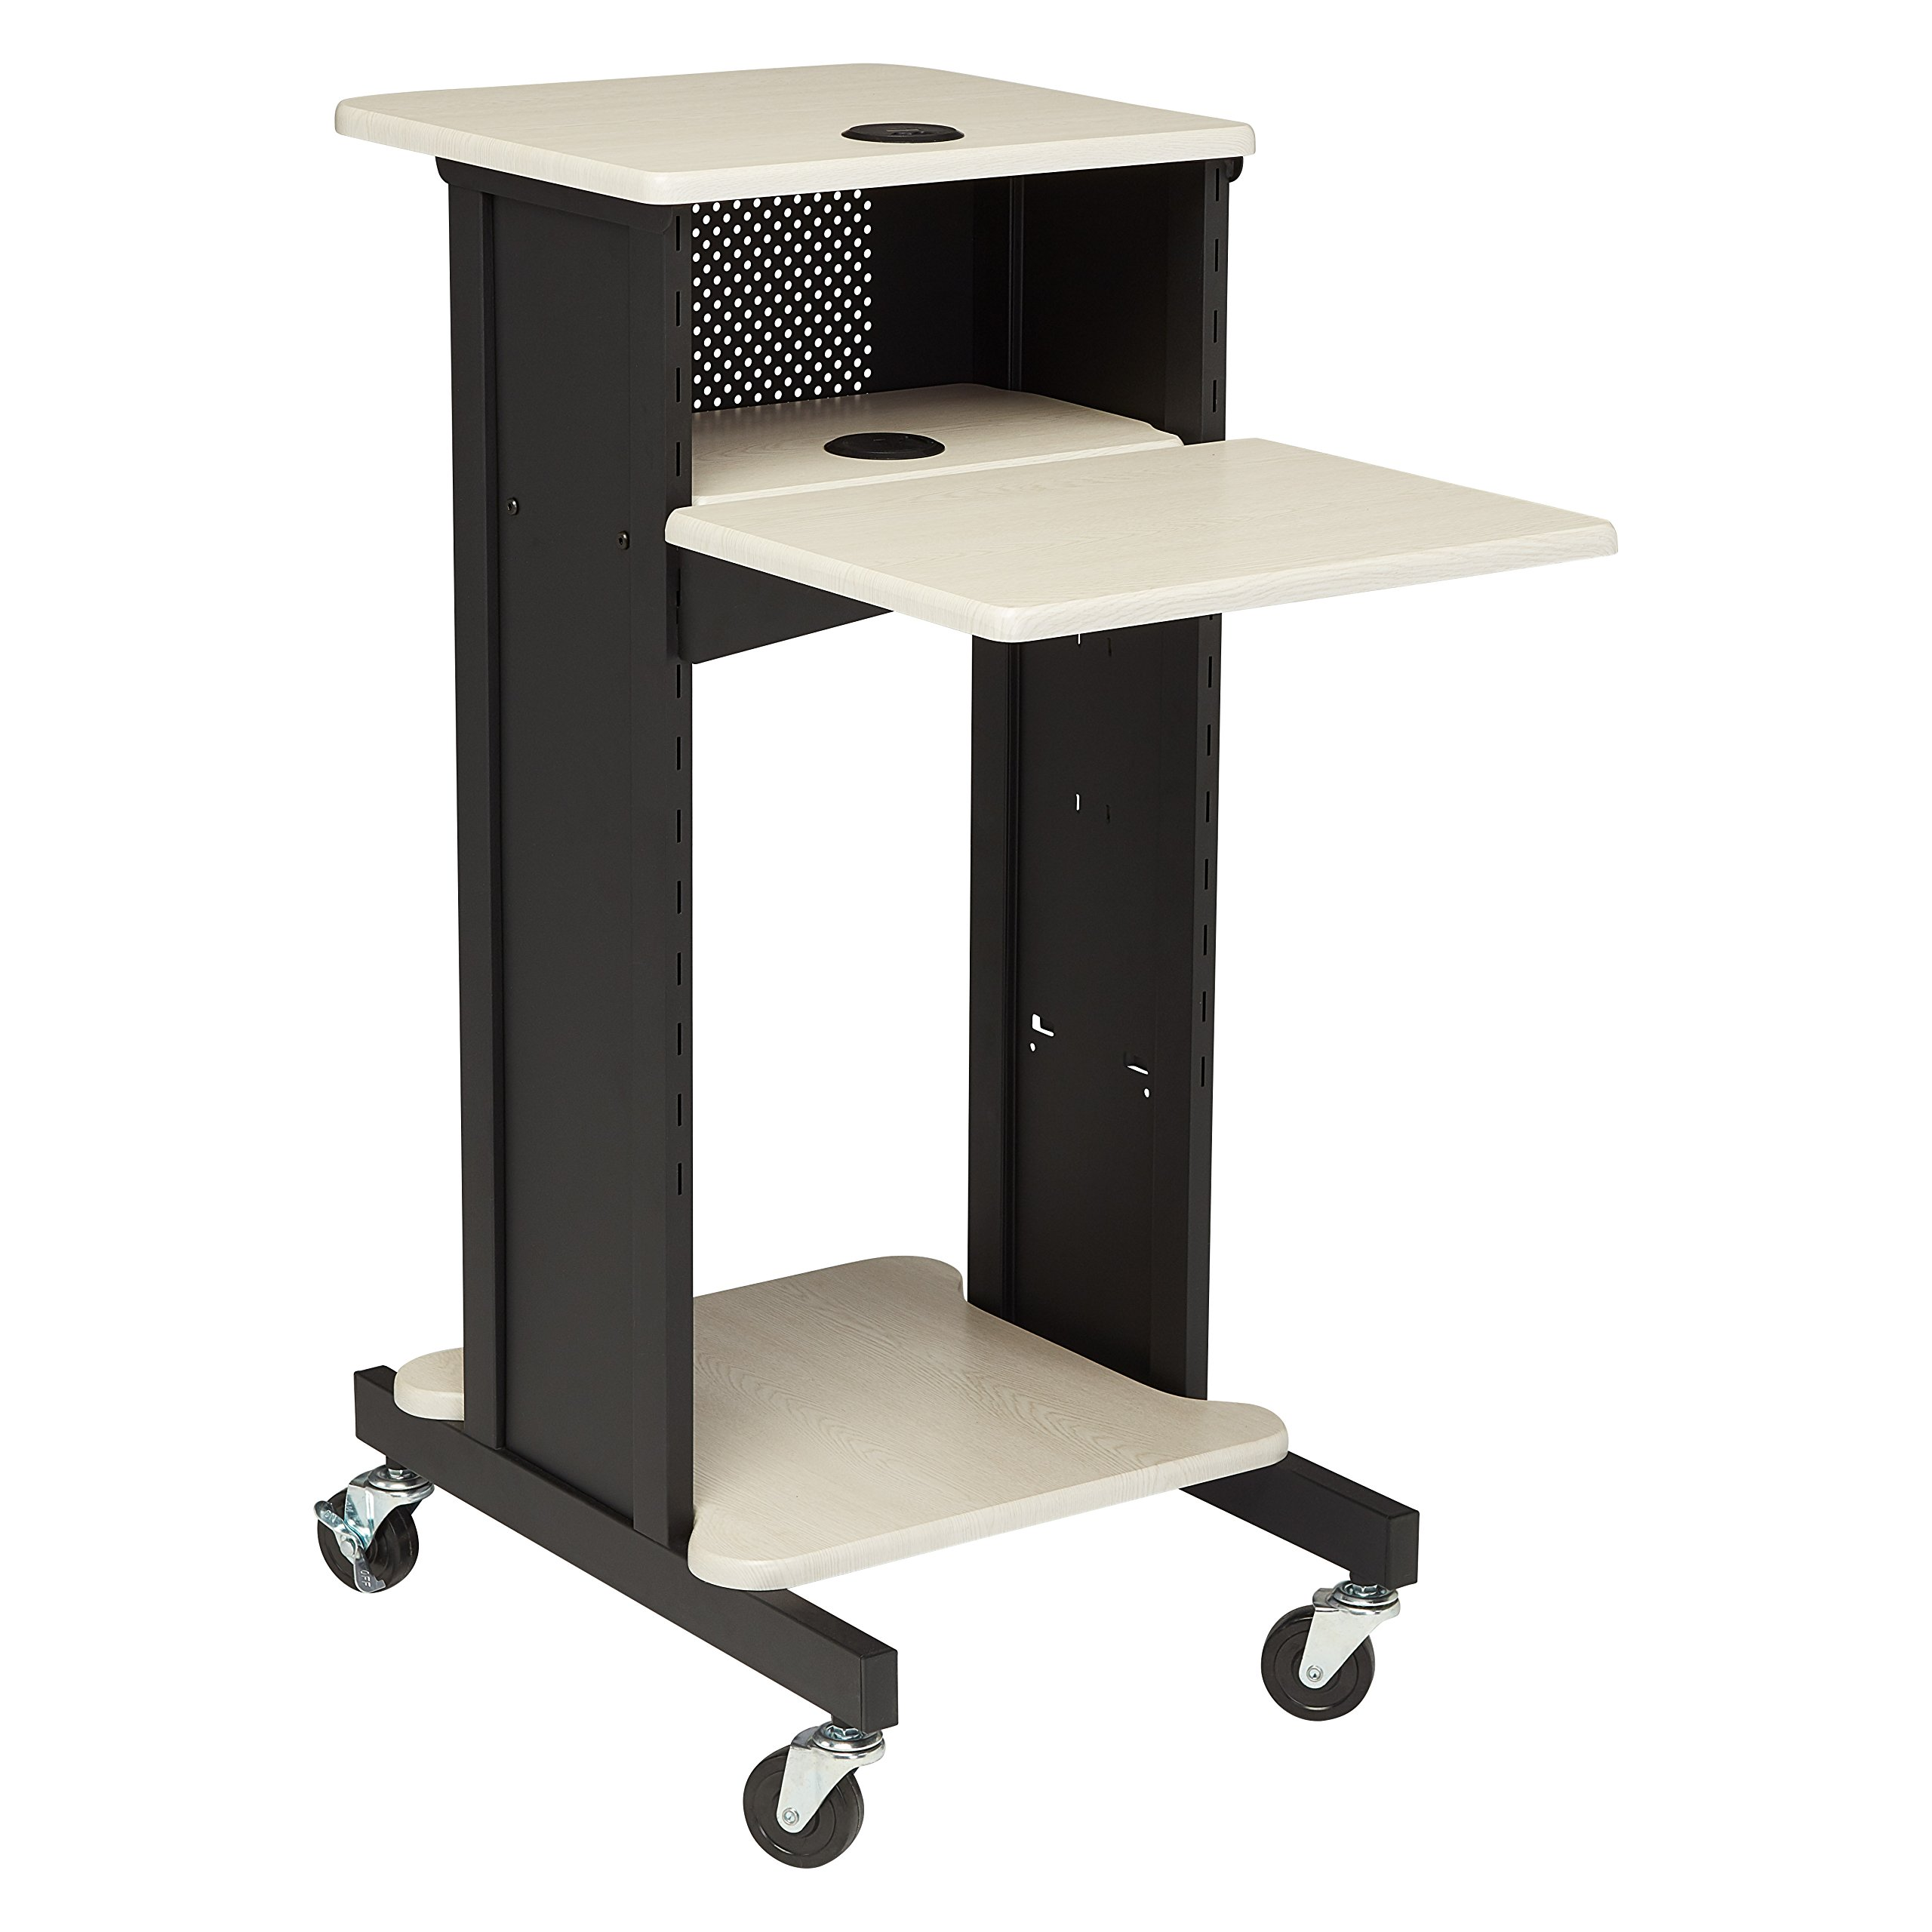 Oklahoma Sound PRC200 Steel Premium Presentation Cart, 18'' Width x 40-1/2'' Height x 30'' Depth, Ivory Woodgrain/Black by Oklahoma Sound